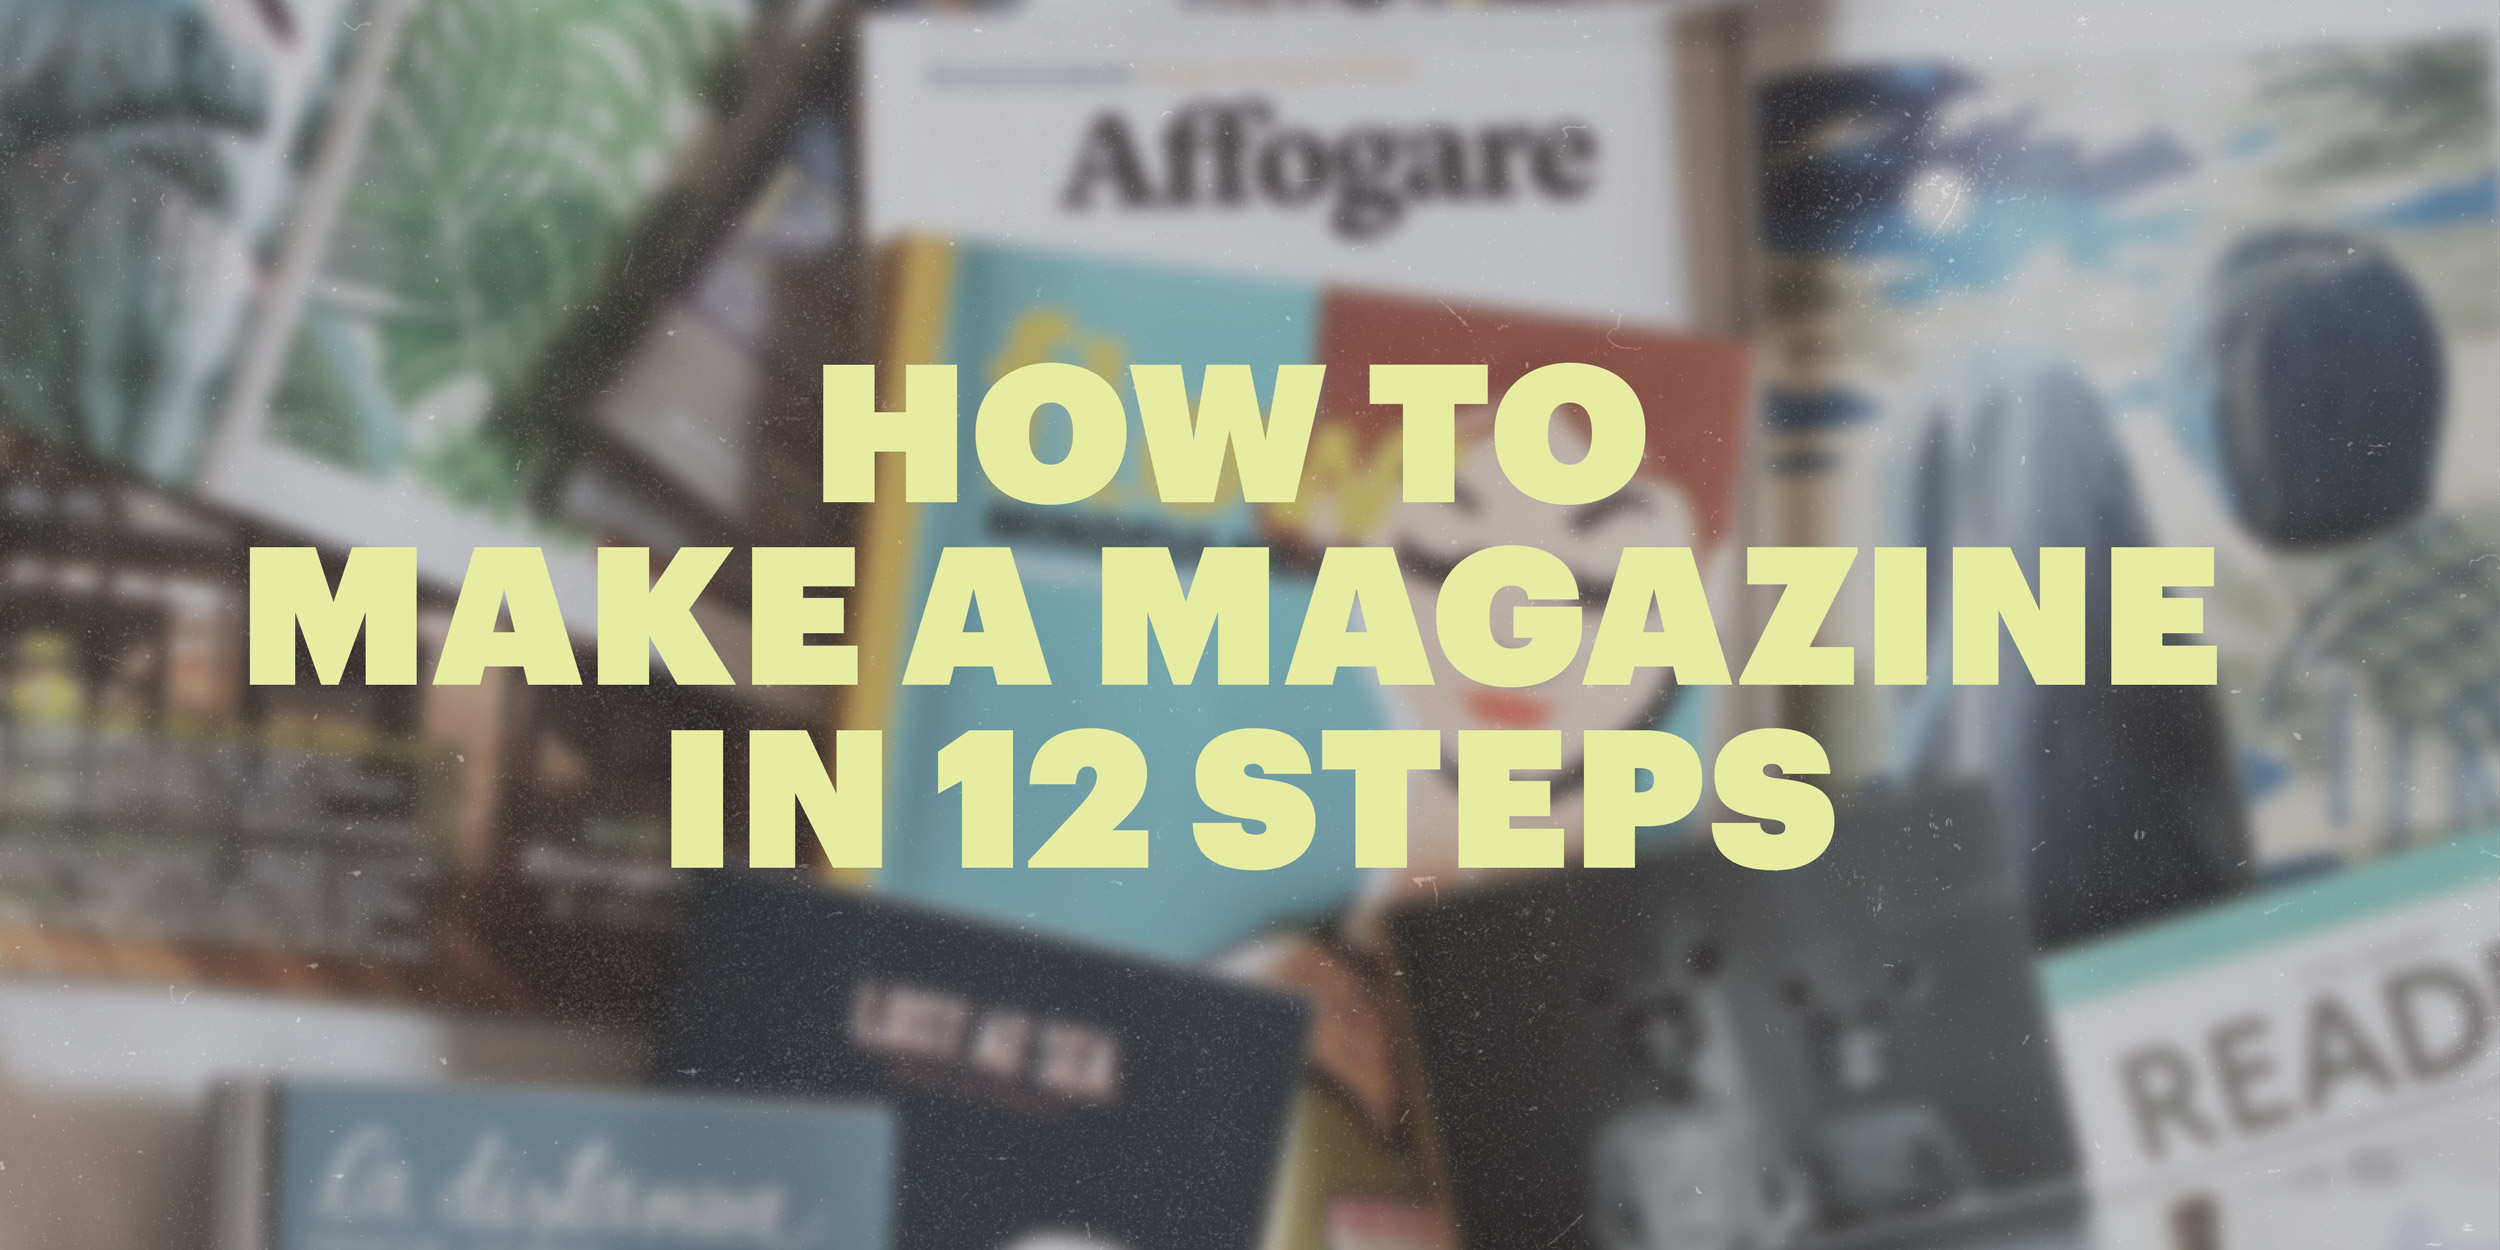 How to Make a Magazine in 12 Steps | Lucidpress